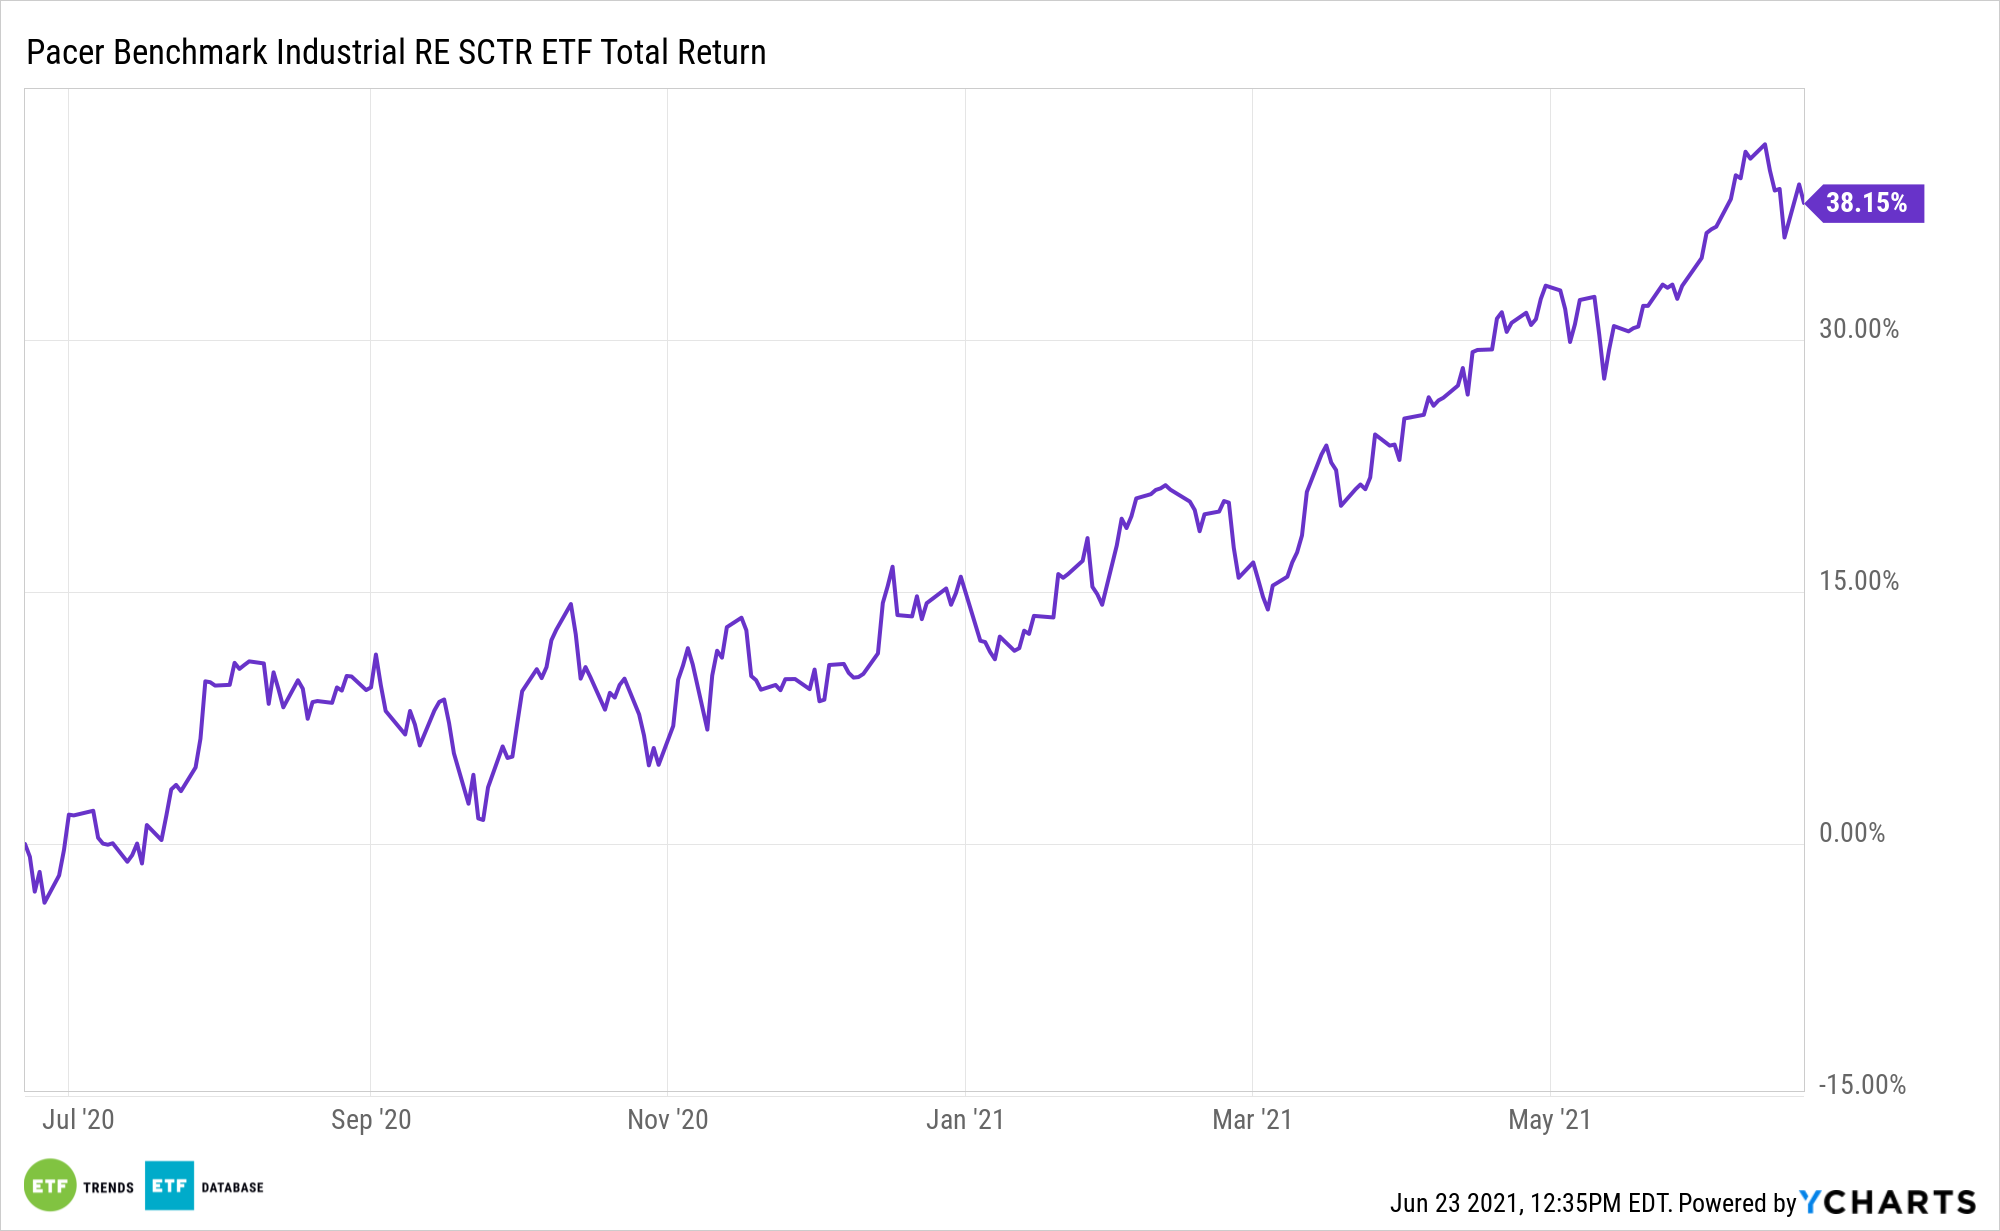 INDS 1 Year Performance